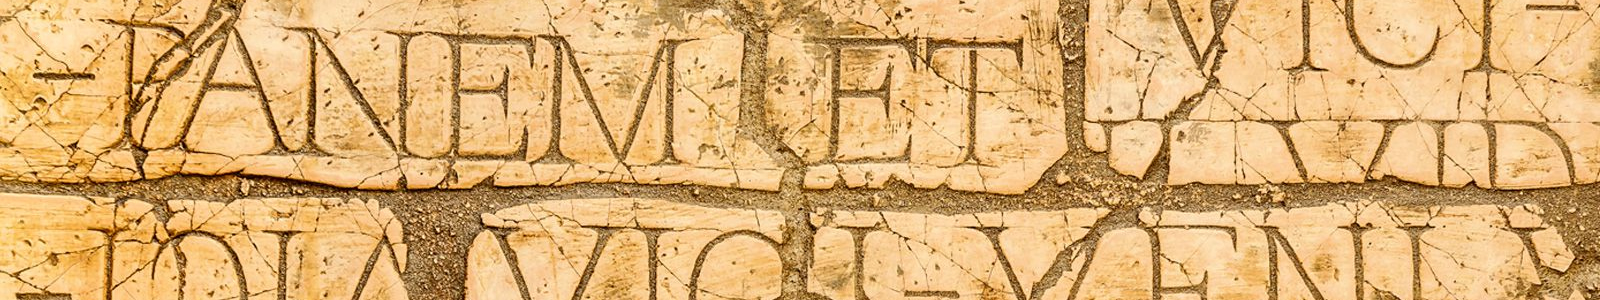 Latin inscriptions and Roman letters. (Image credit: Shutterstock).